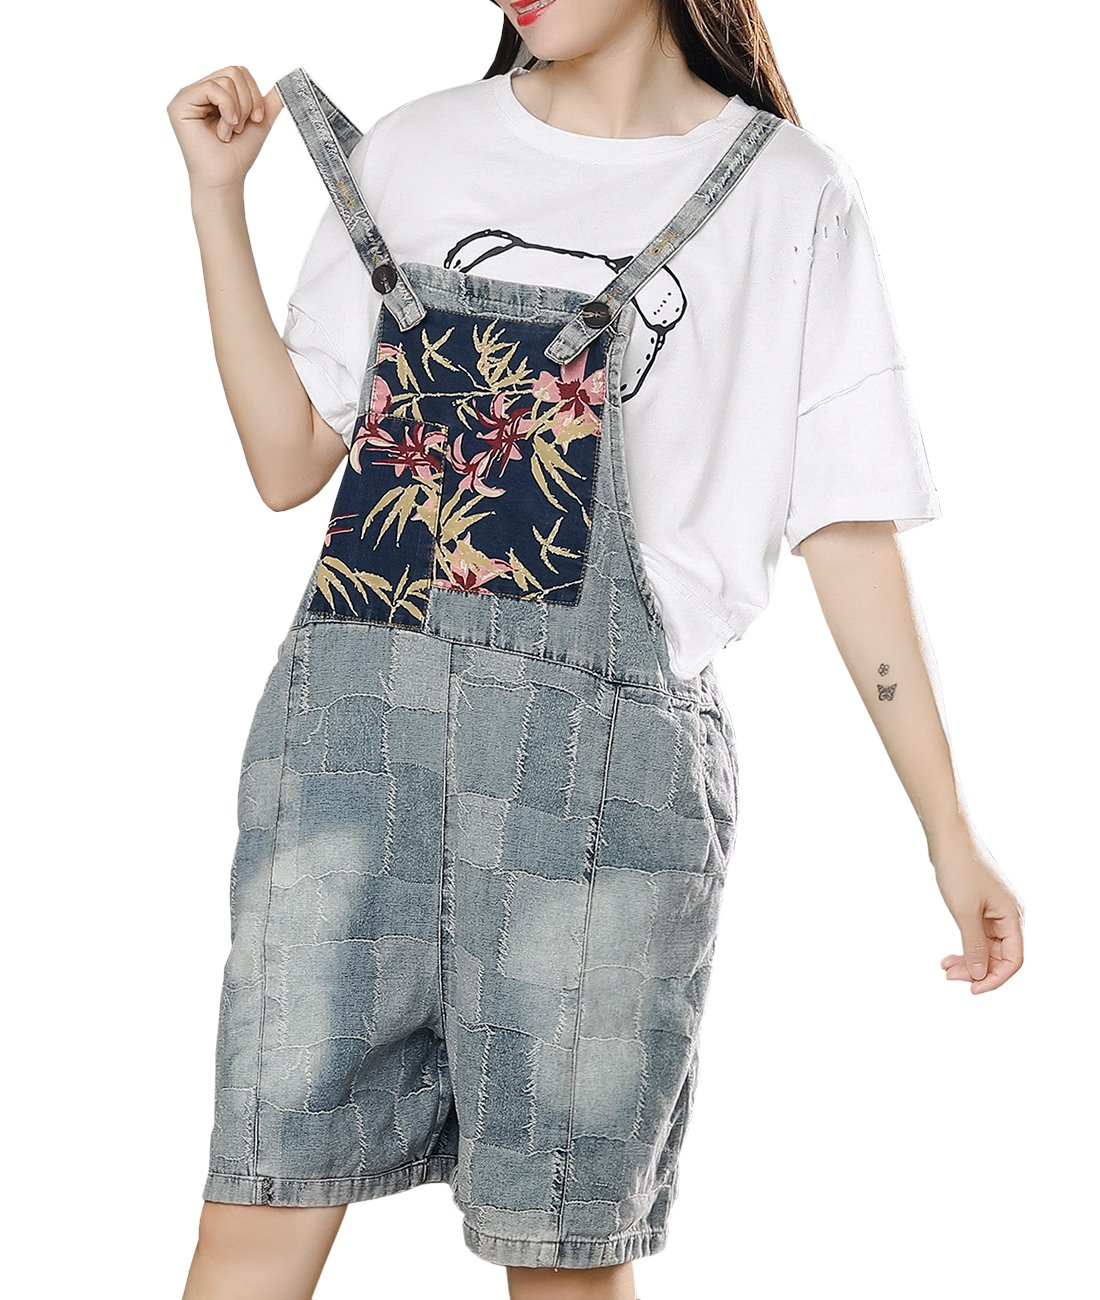 8f983498b1d YESNO P16 Women Fashion Casual Jumpsuits Rompers Denim Overalls ...